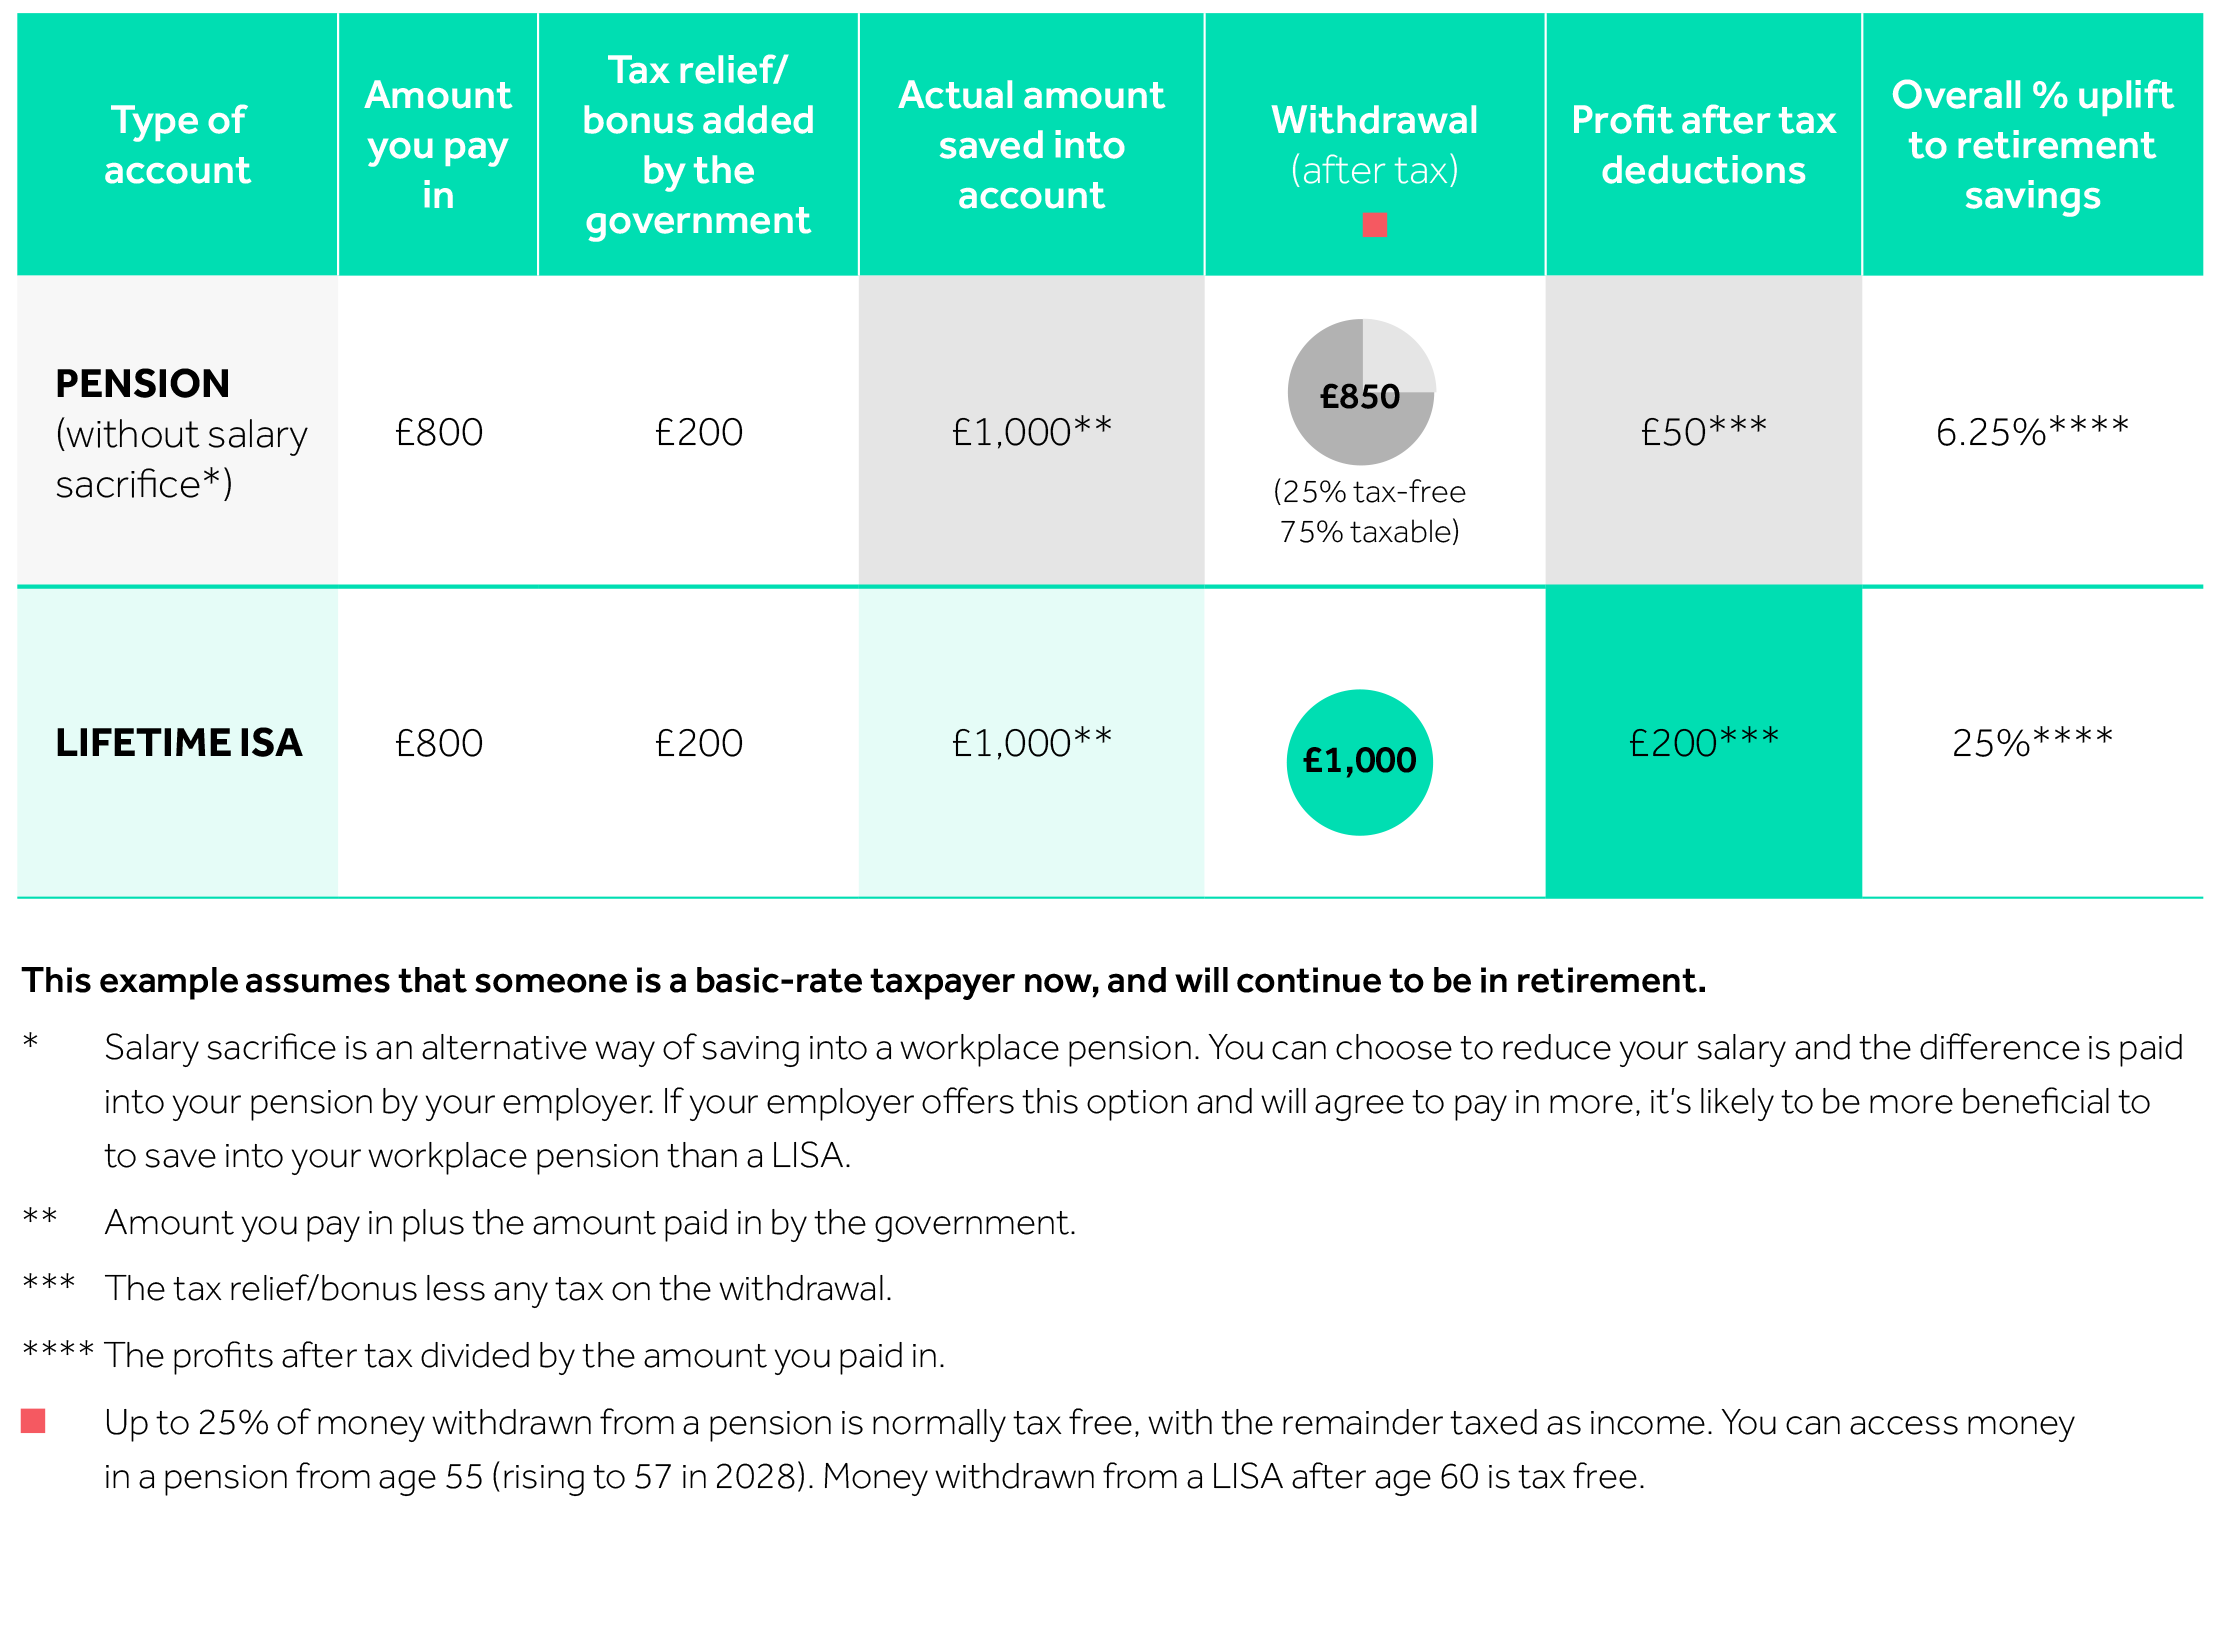 Table showing an example of the tax treatment of contributions and withdrawals if you're a basic-rate taxpayer